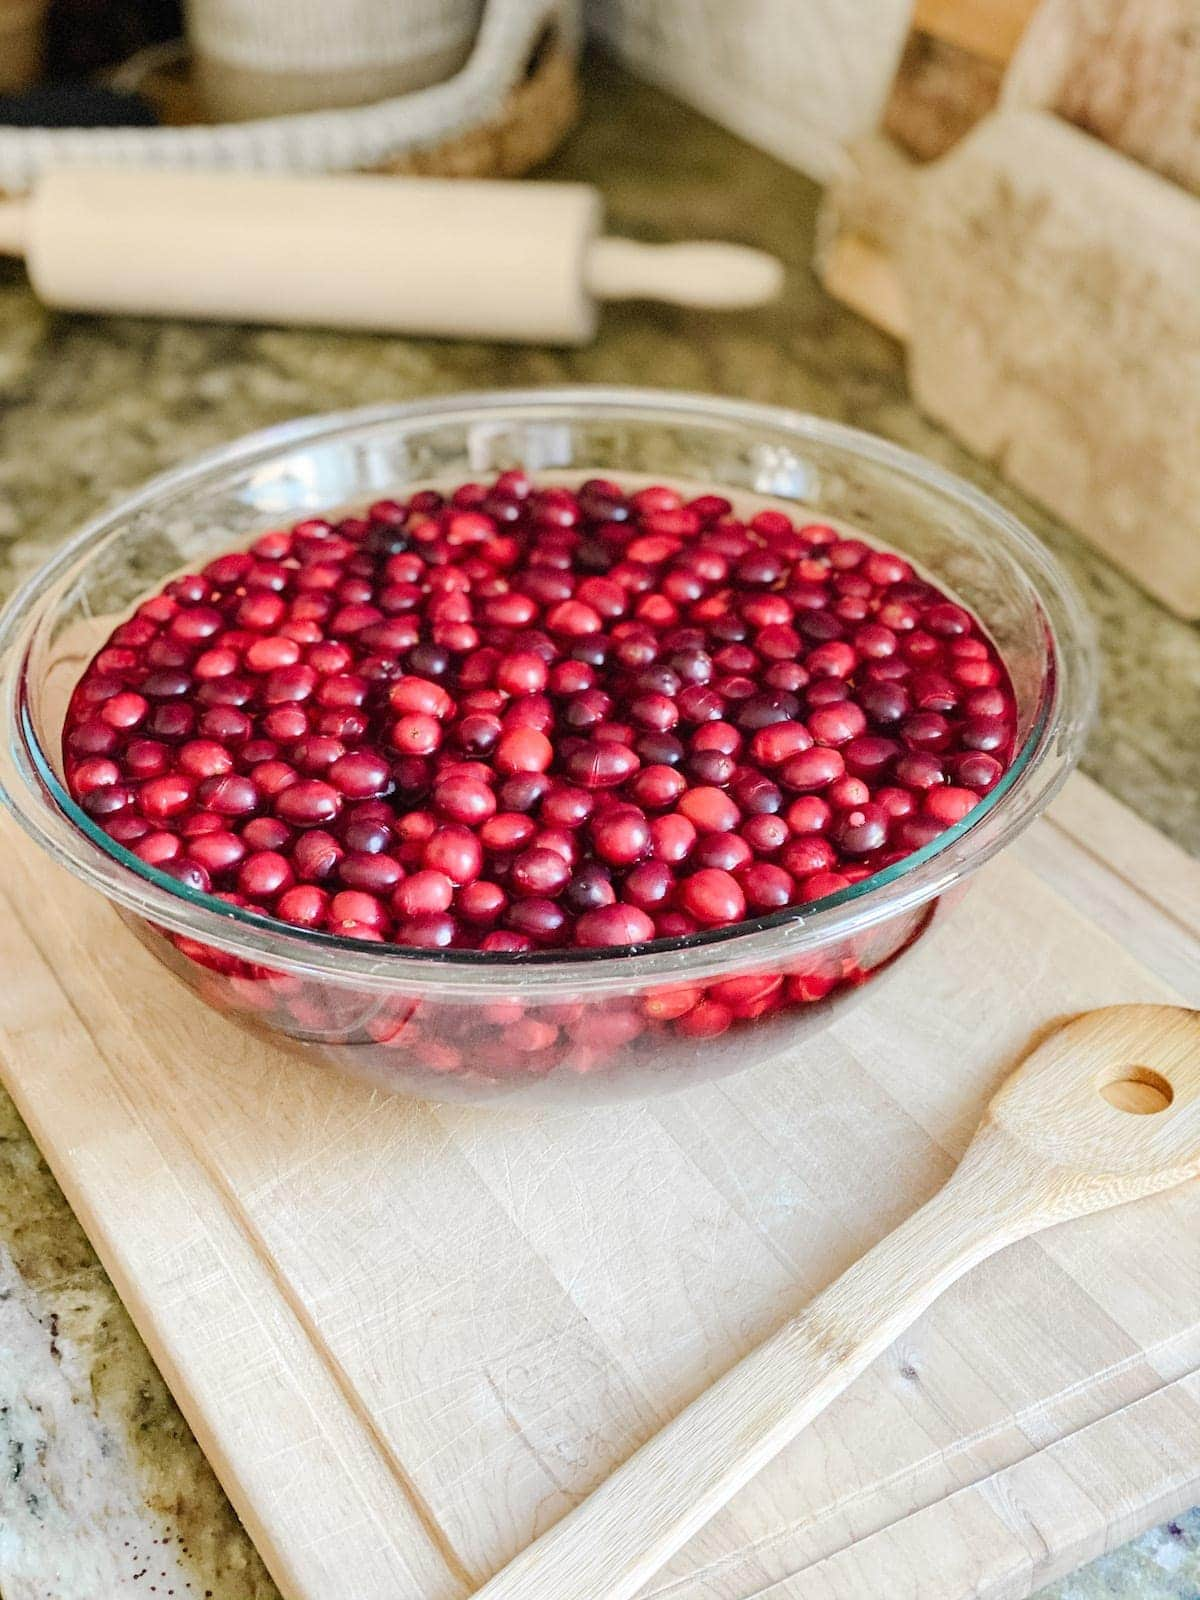 How to dry cranberries for decorating